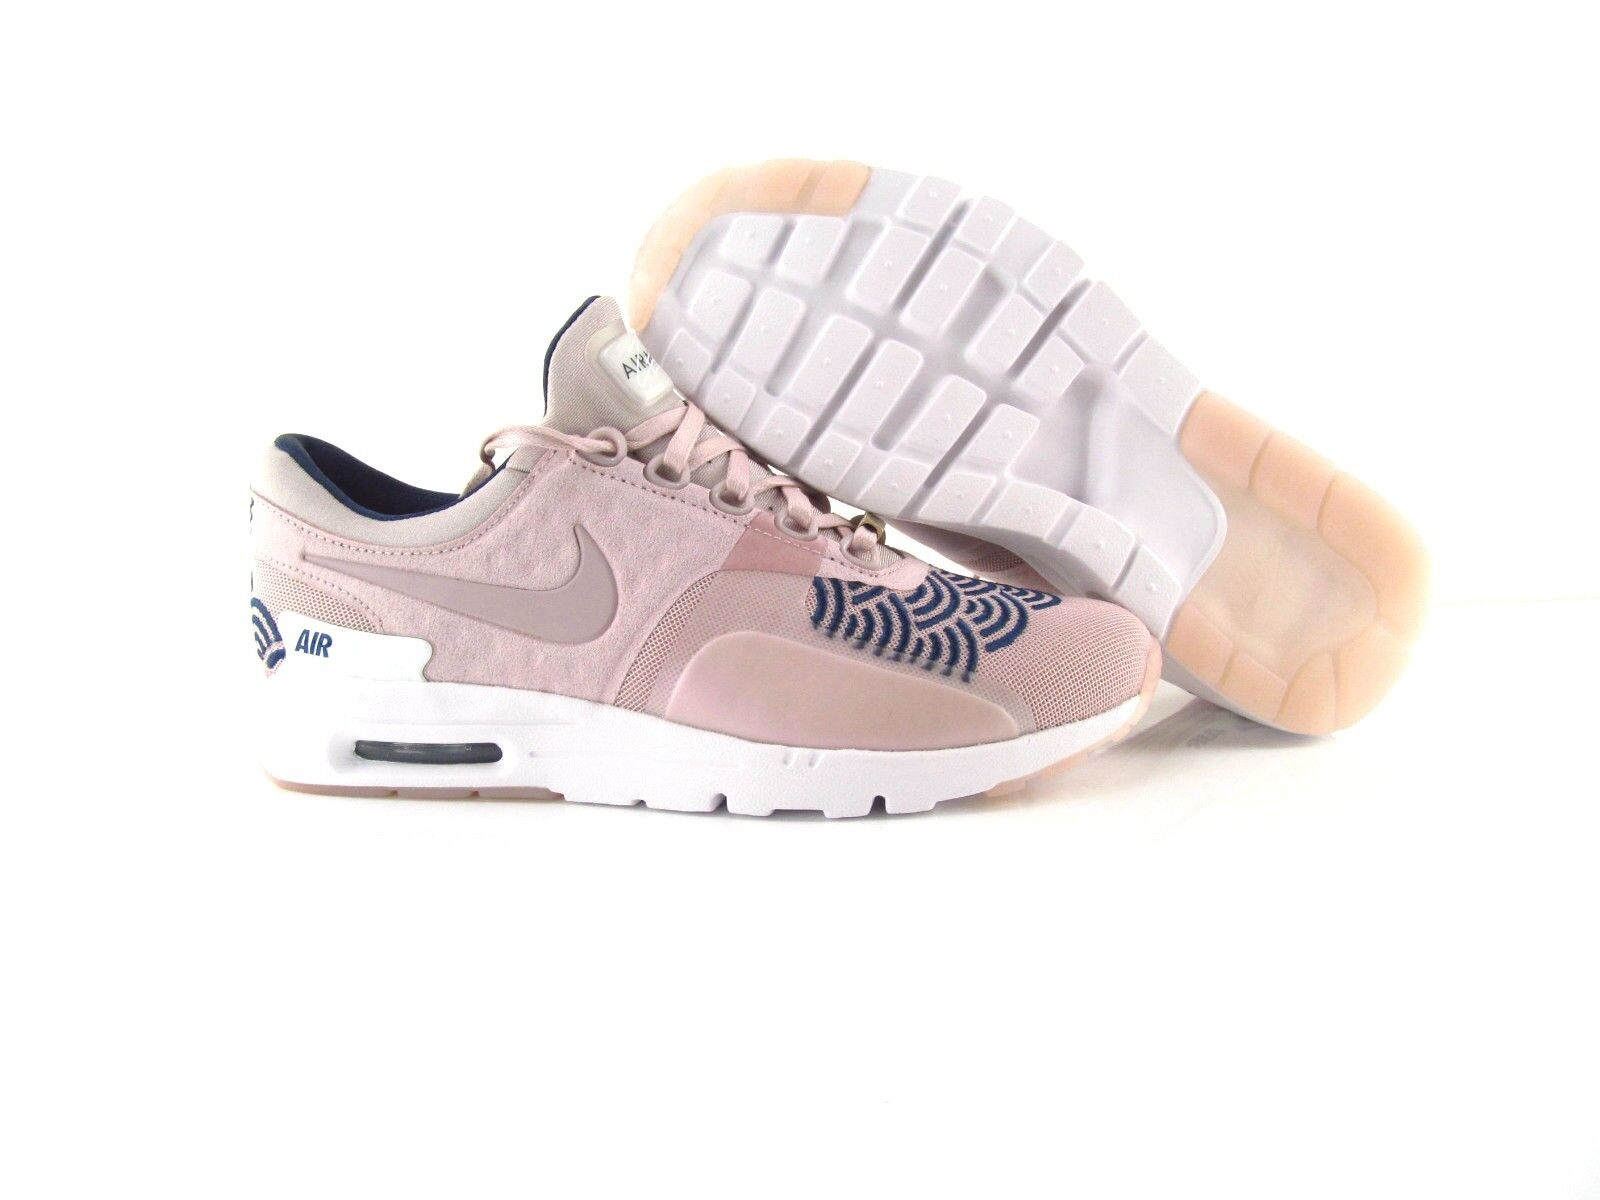 W NIKE AIR MAX ZERO lotc QS Tokyo CHAMPAGNE NSW og NEW us_7+10 eur_38 42